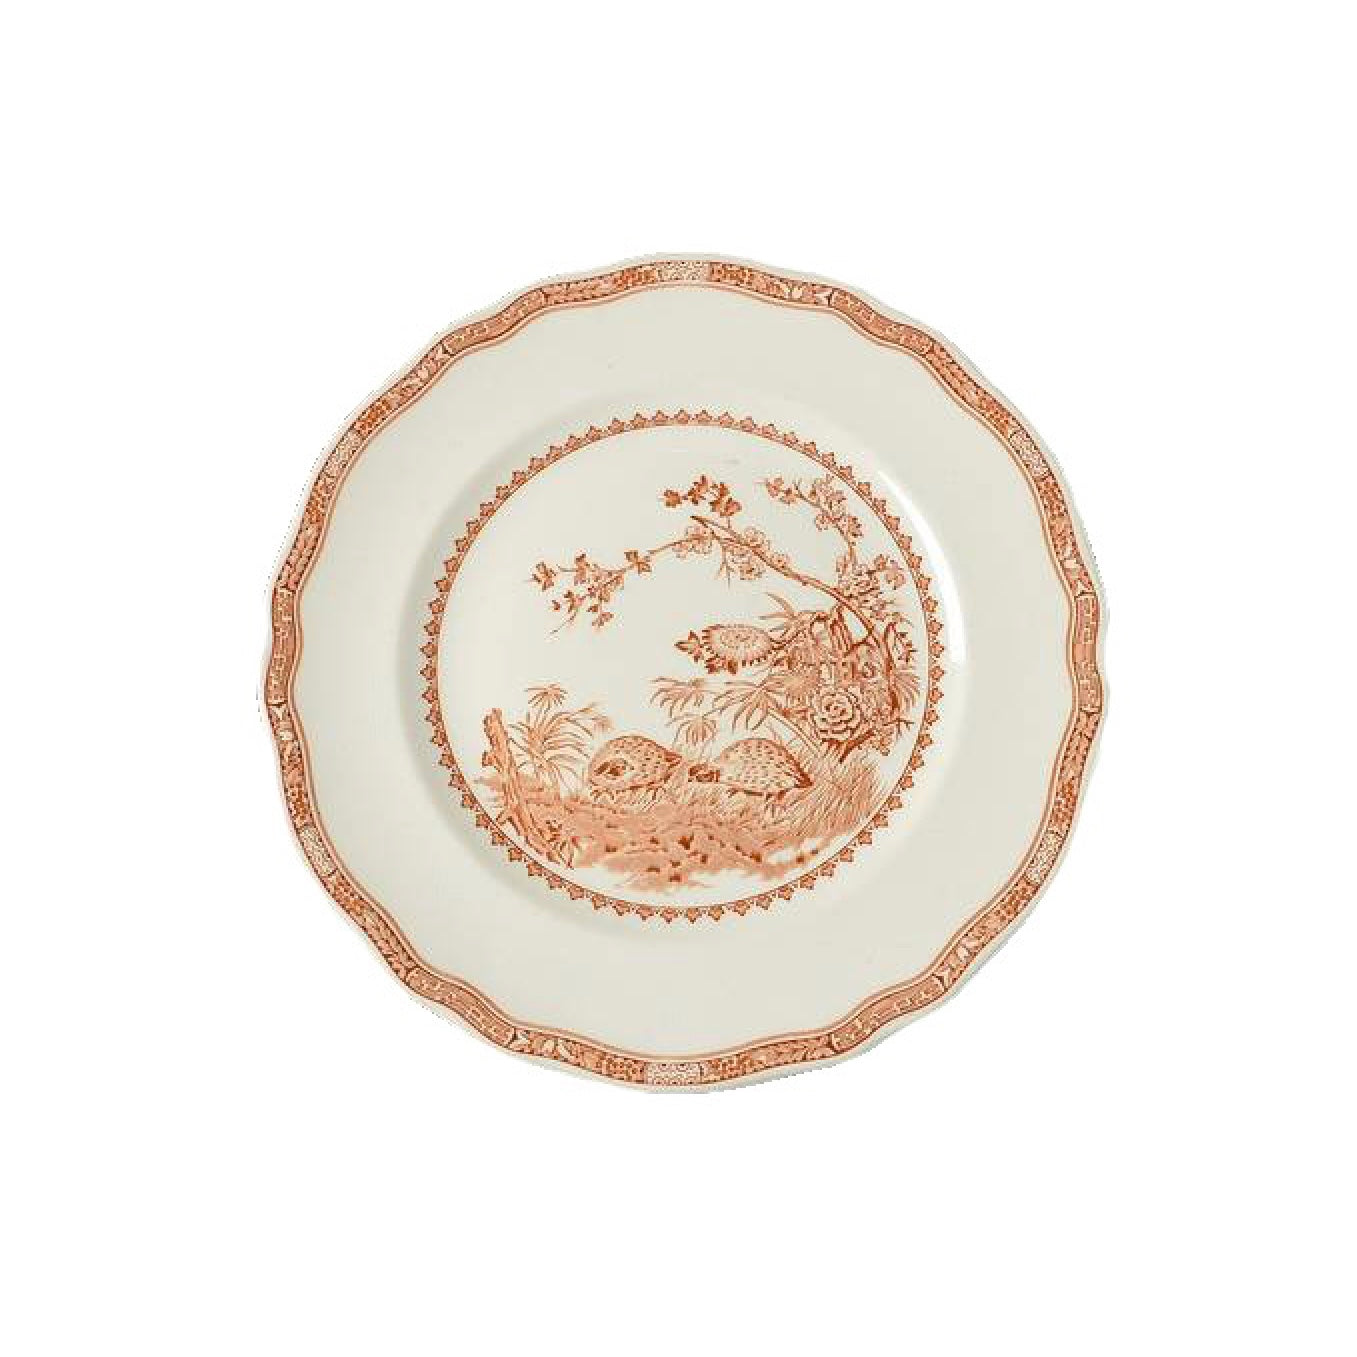 Dorset Delft Hare Dinner Plate | Putti Fine Furnishings